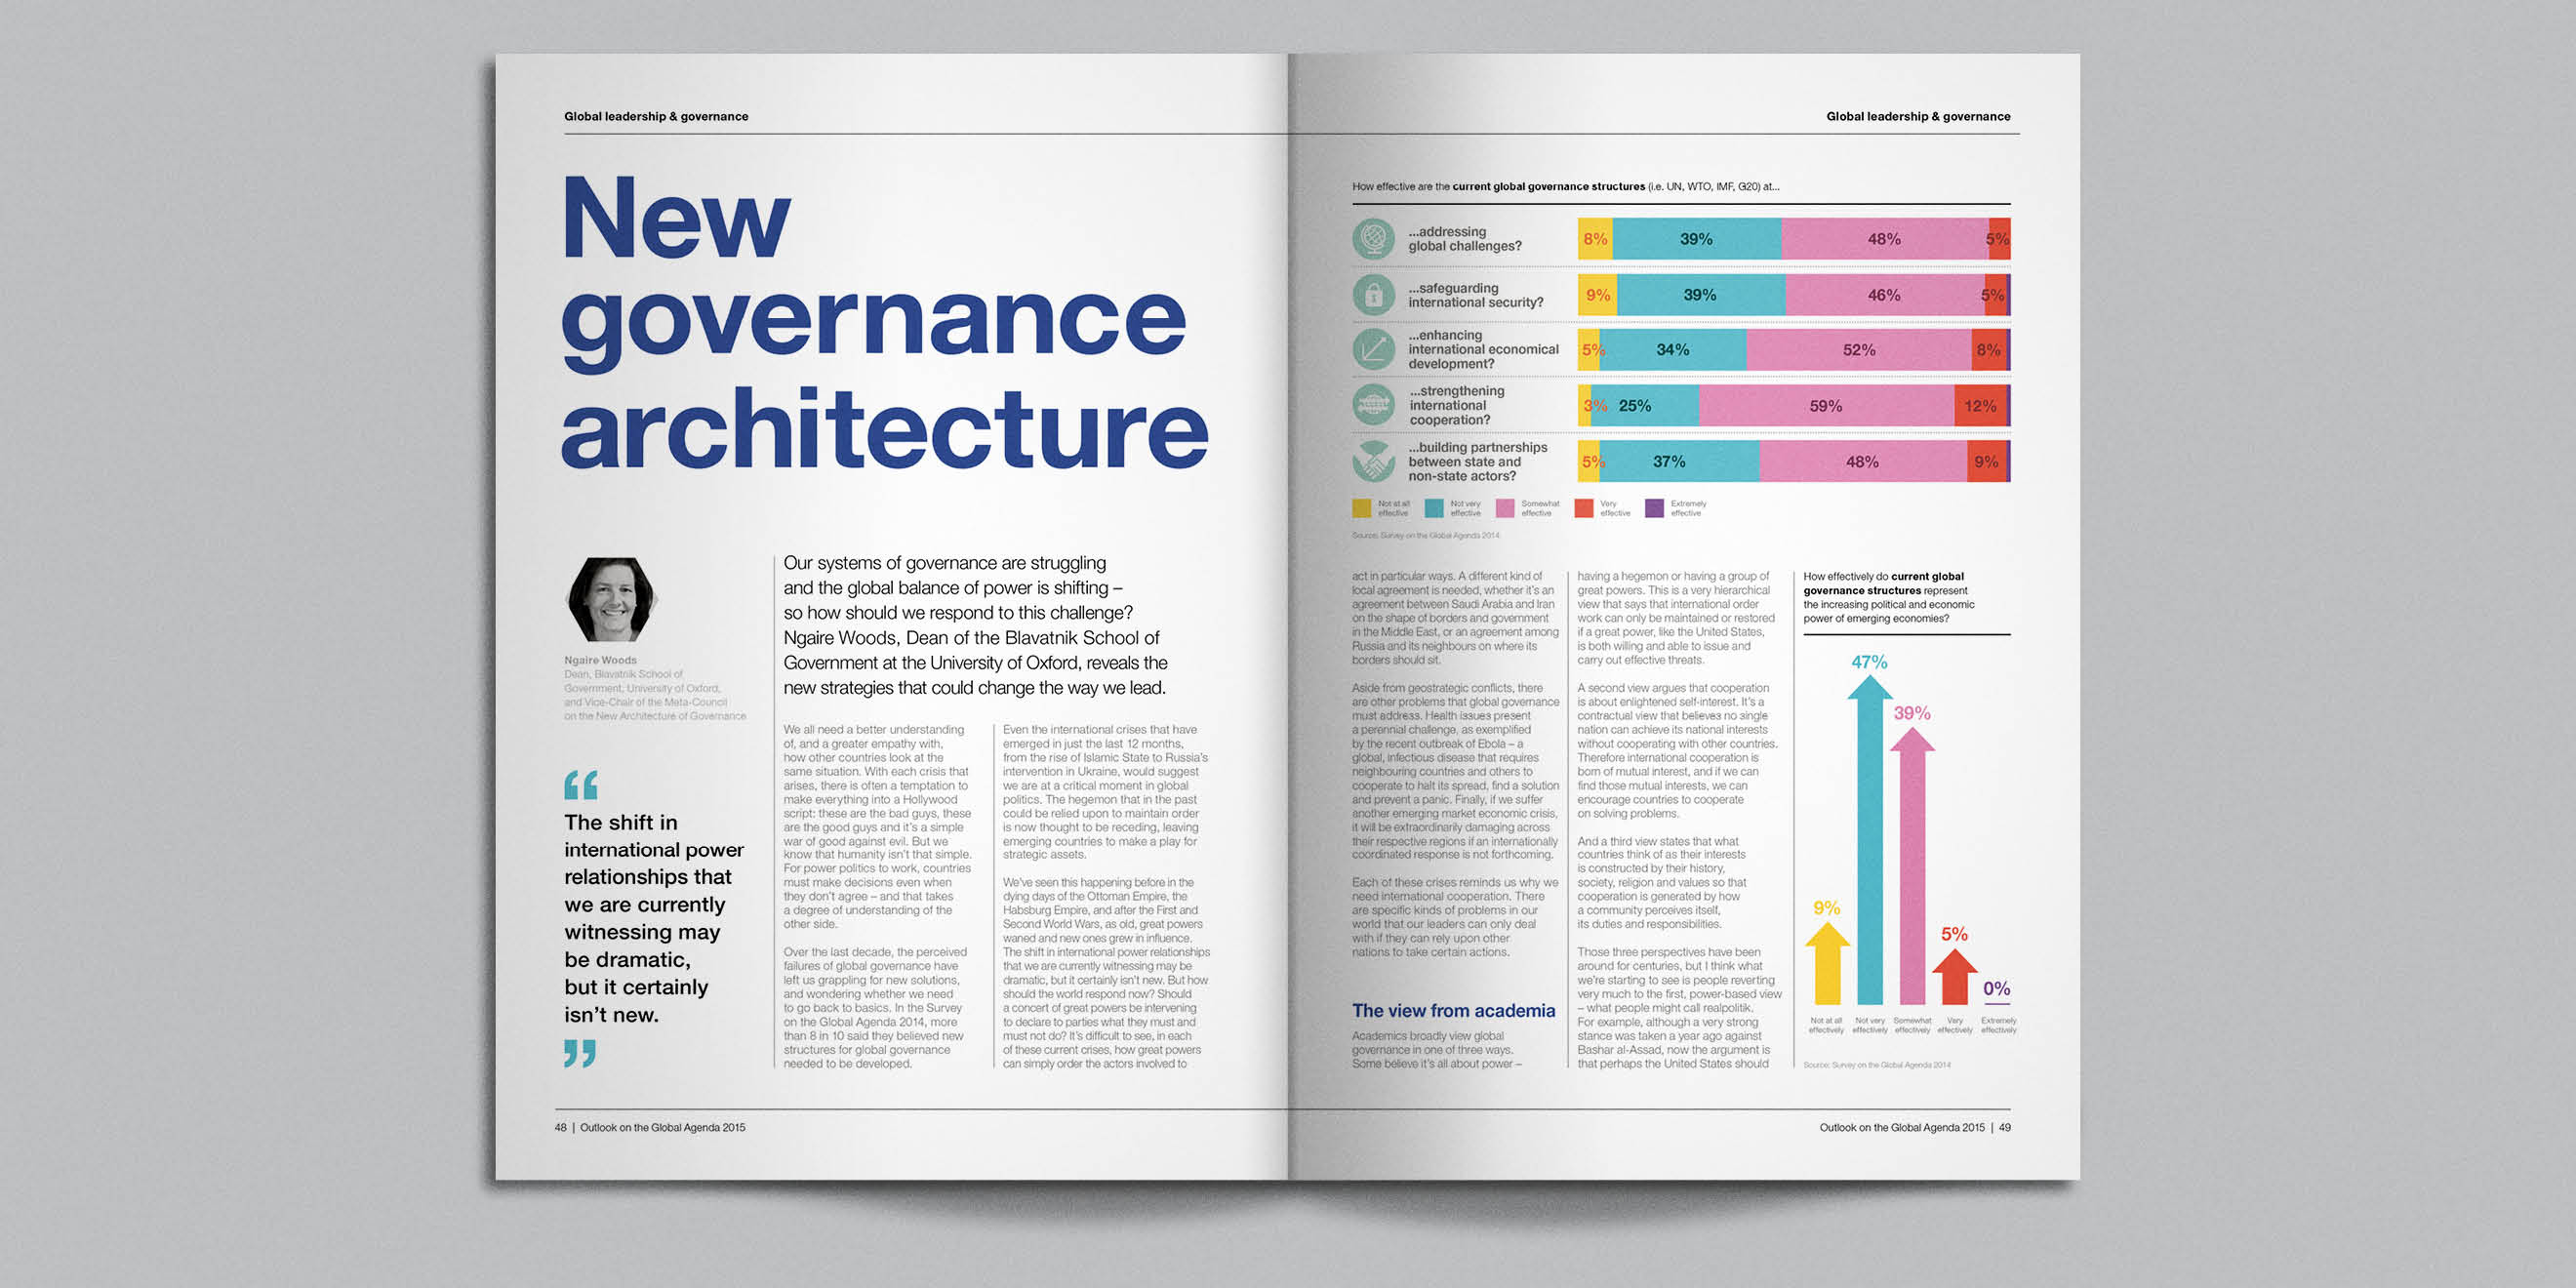 New governance architecture spread from WEF: Outlook on the Global Agenda 2015 by Human After All